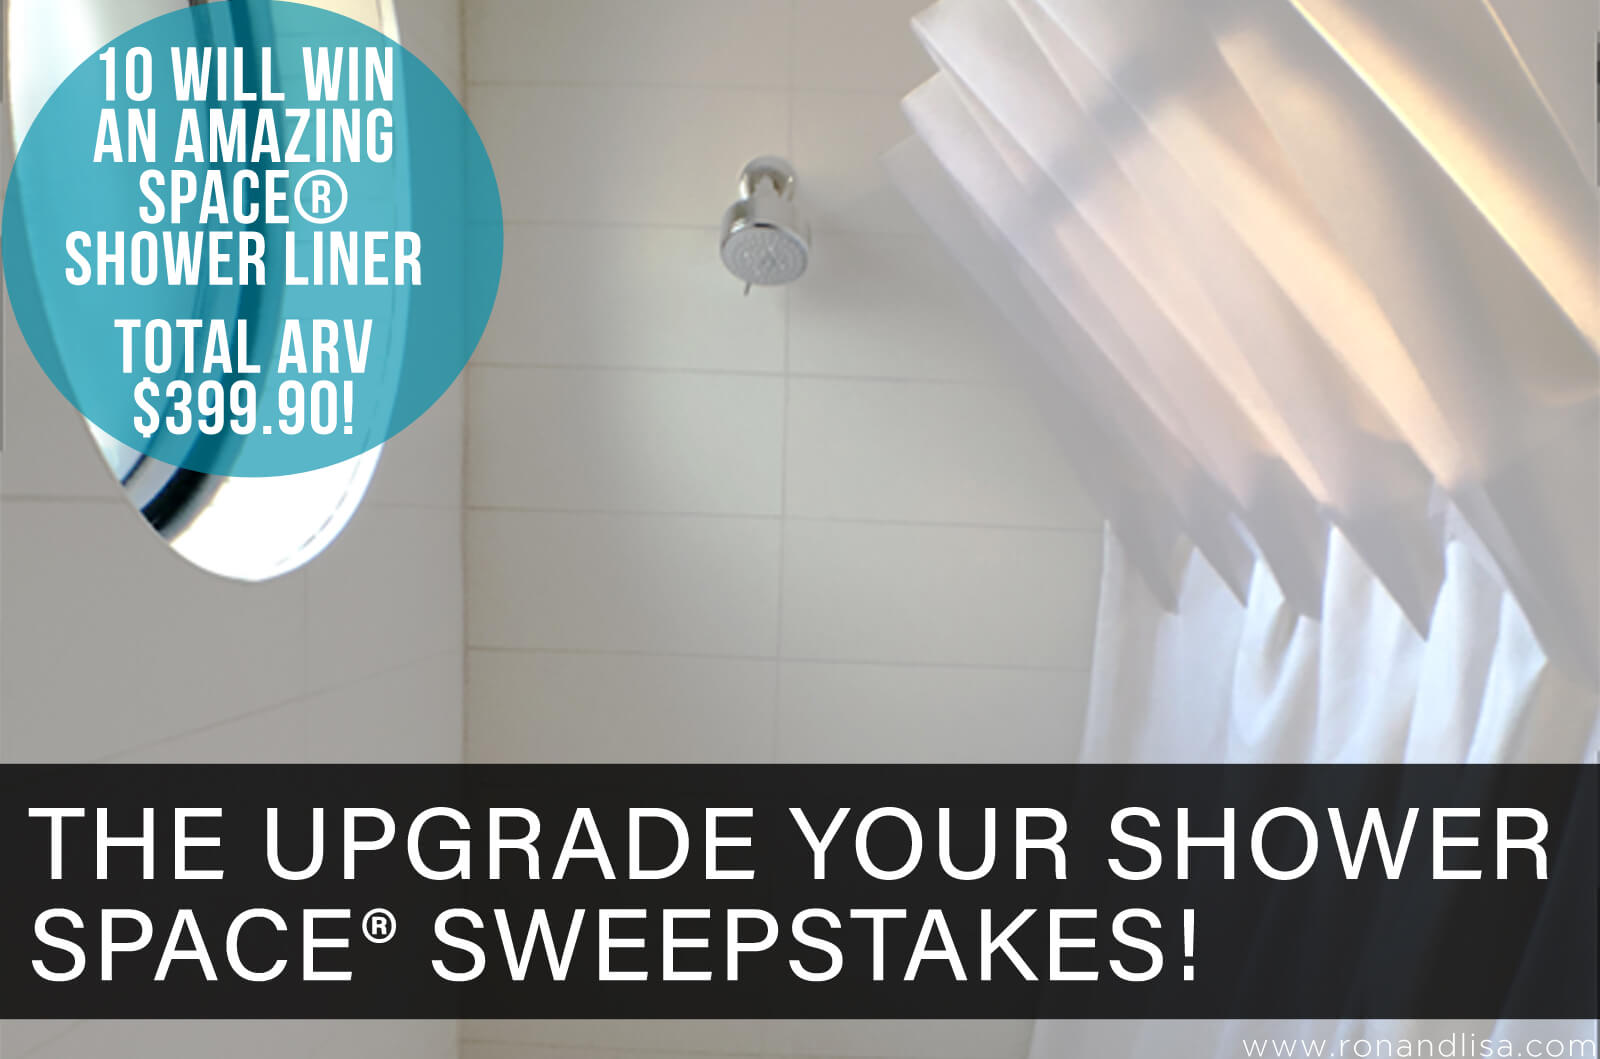 The Upgrade Your Shower Space Sweepstakes!